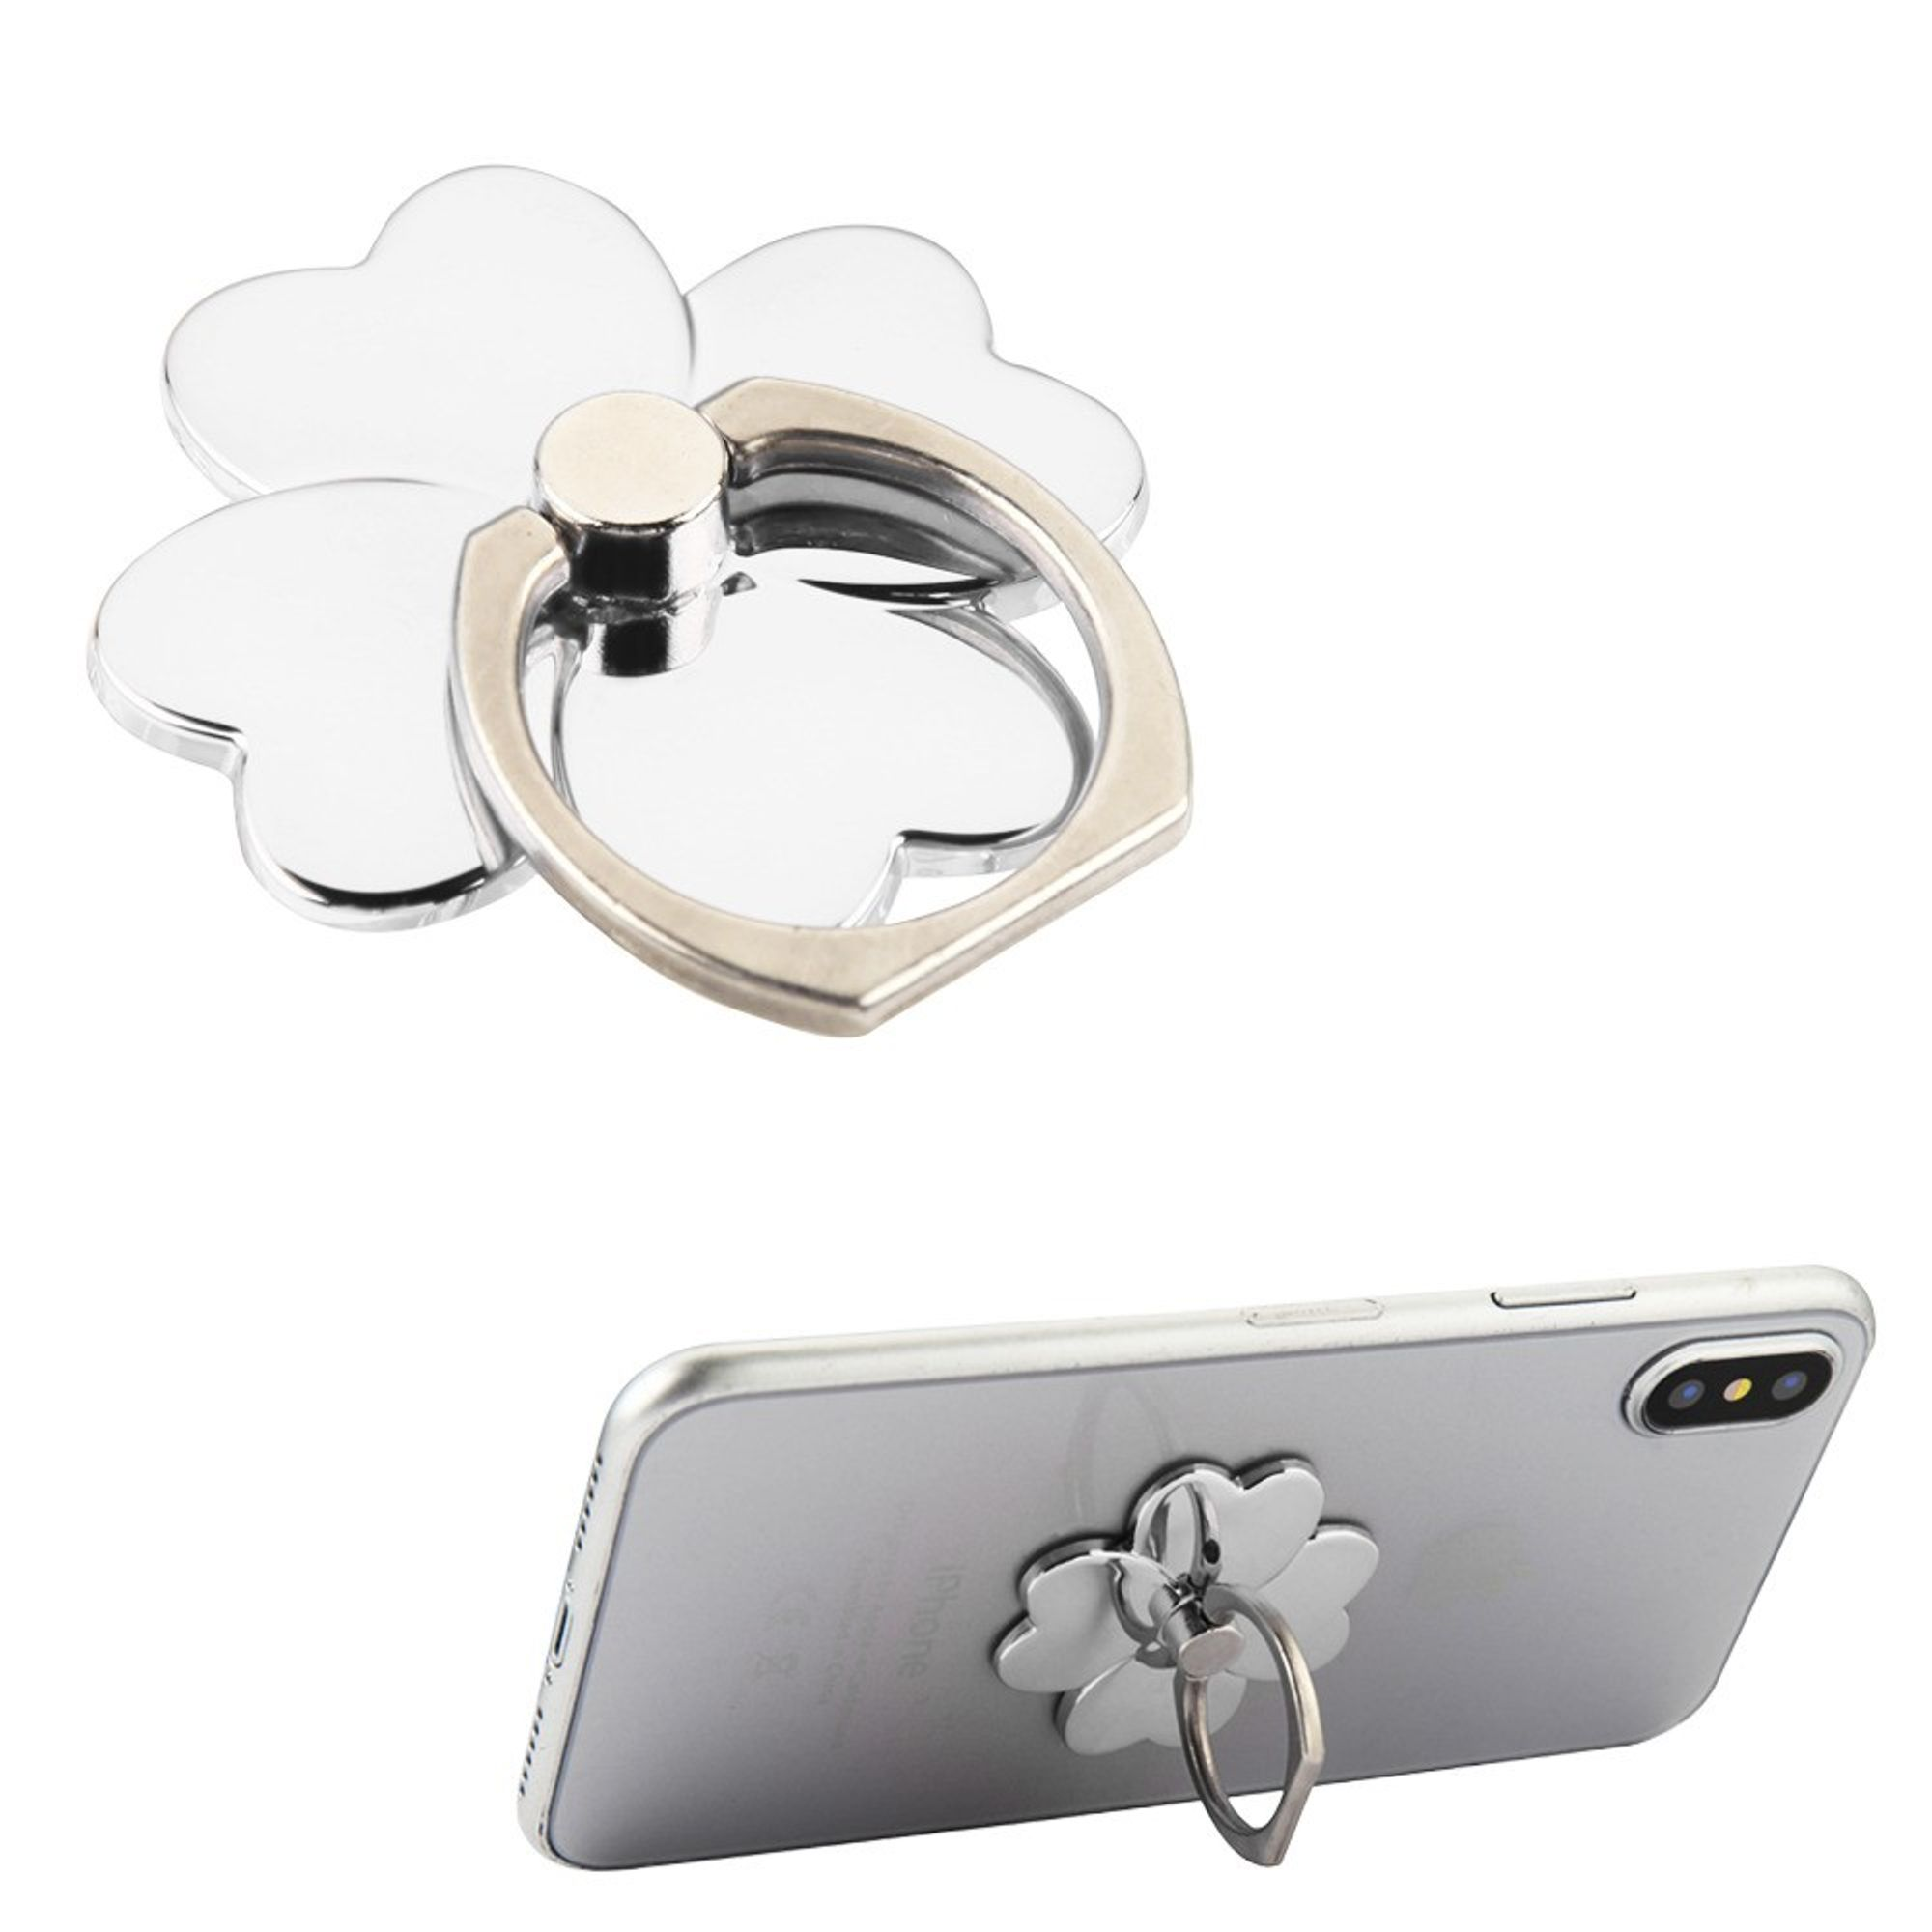 Insten Universal Electroplating Four-leaf Clover Finger Grip Rotating Ring Stand Holder for Mobile Phones iPhones Tablets iPads With Adesive Back - Silver